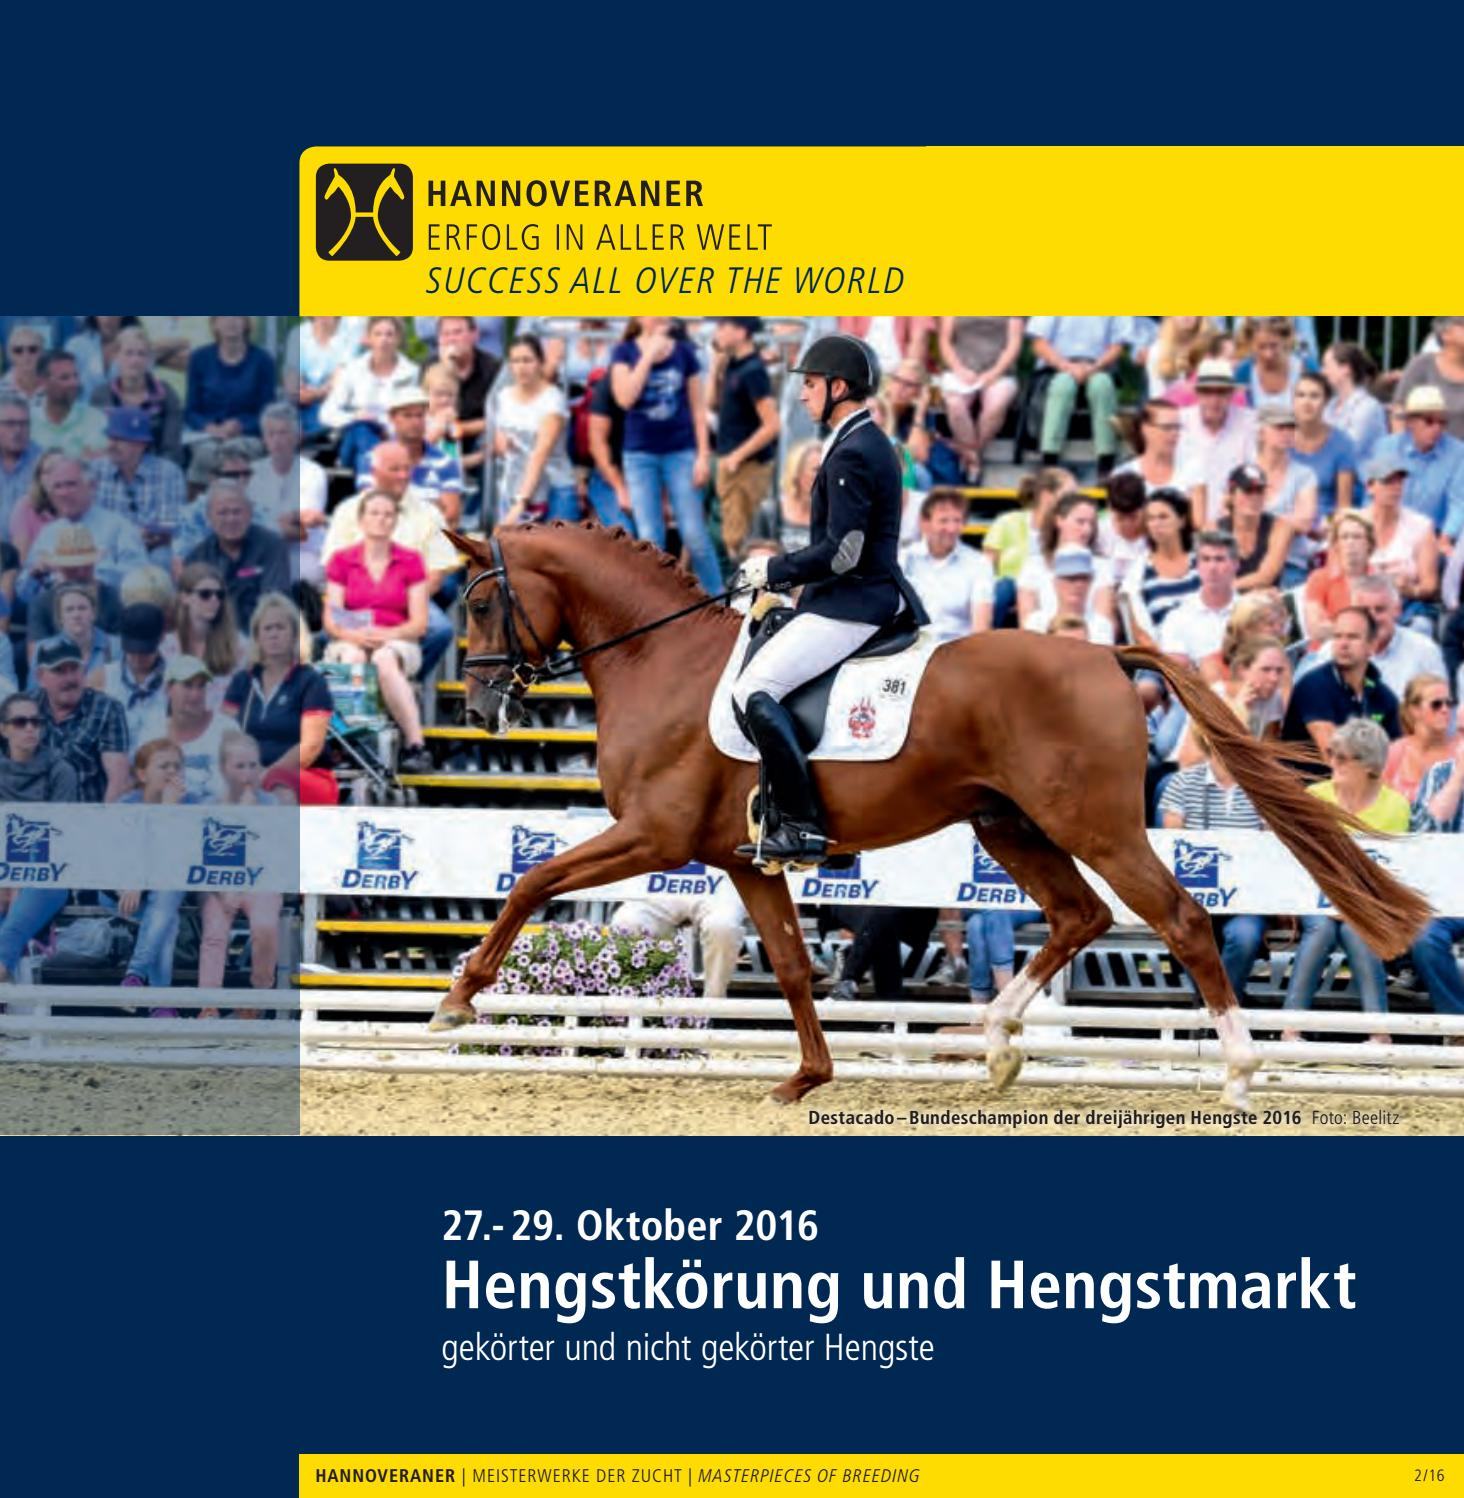 Hannoveraner Hengstkörung Und Hengstmarkt   Hanoverian Stallion Licensing  And Stallion Sales 2016 By Hannoveraner Verband   Issuu